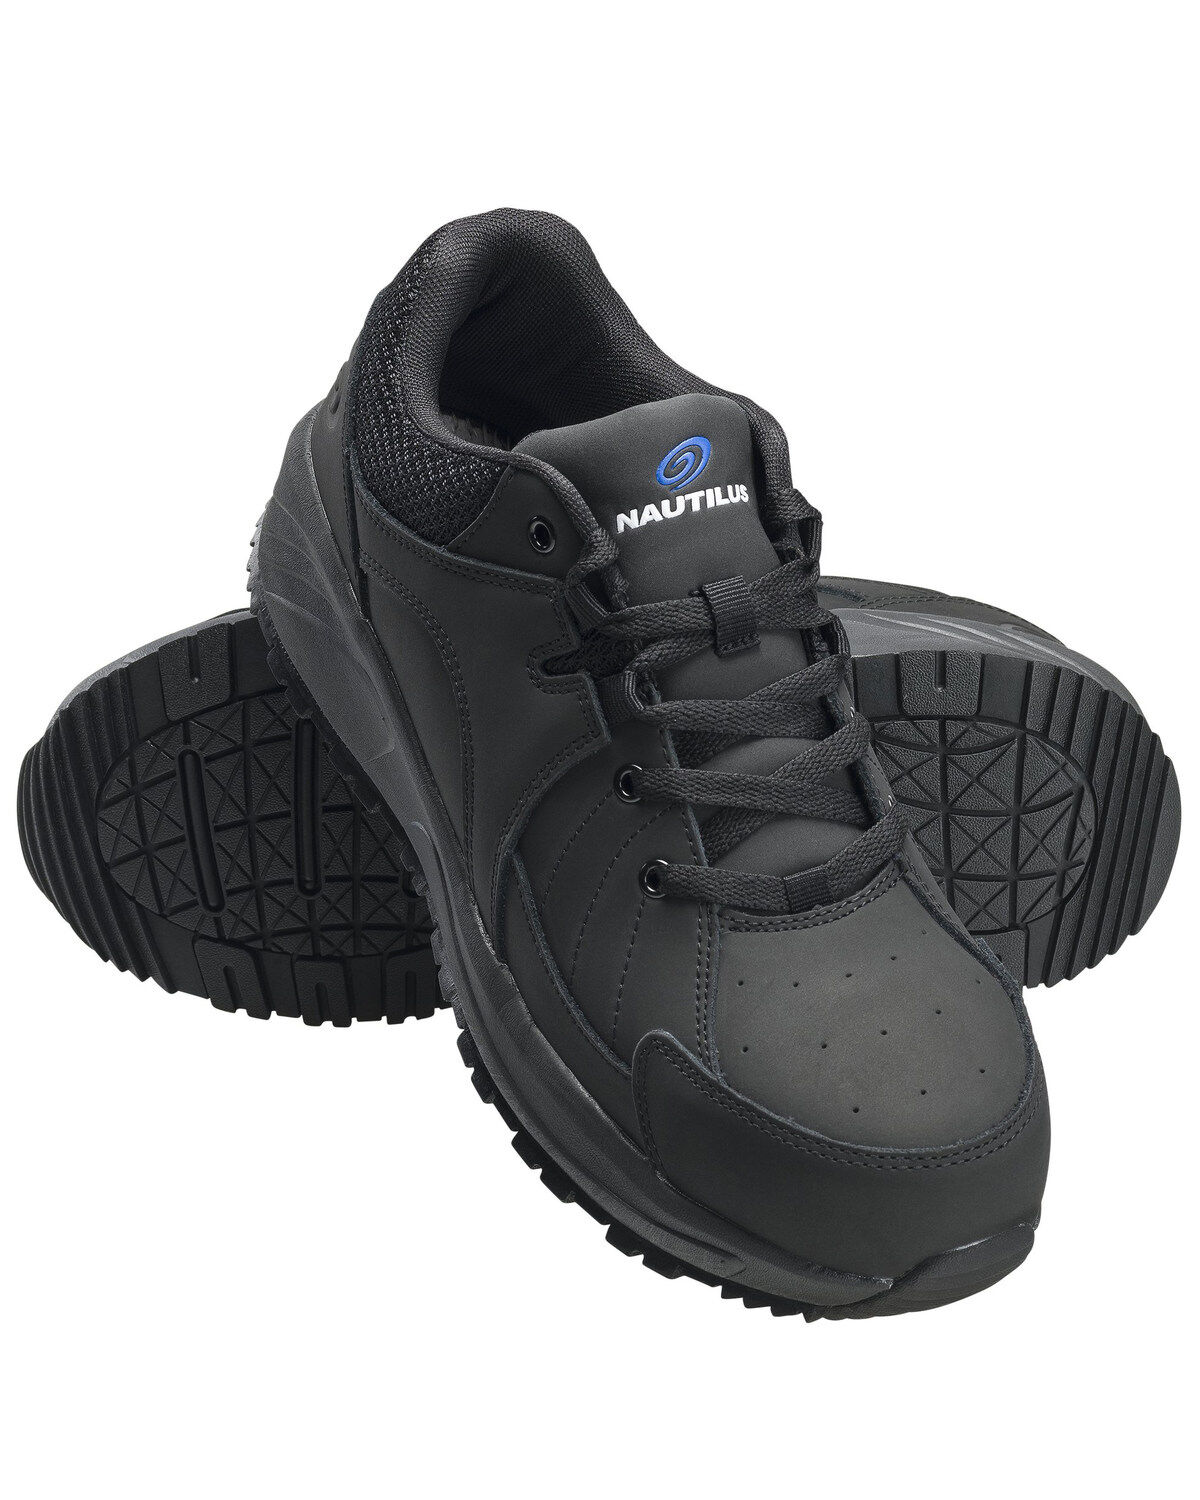 Work Shoes - Composite Toe | Boot Barn